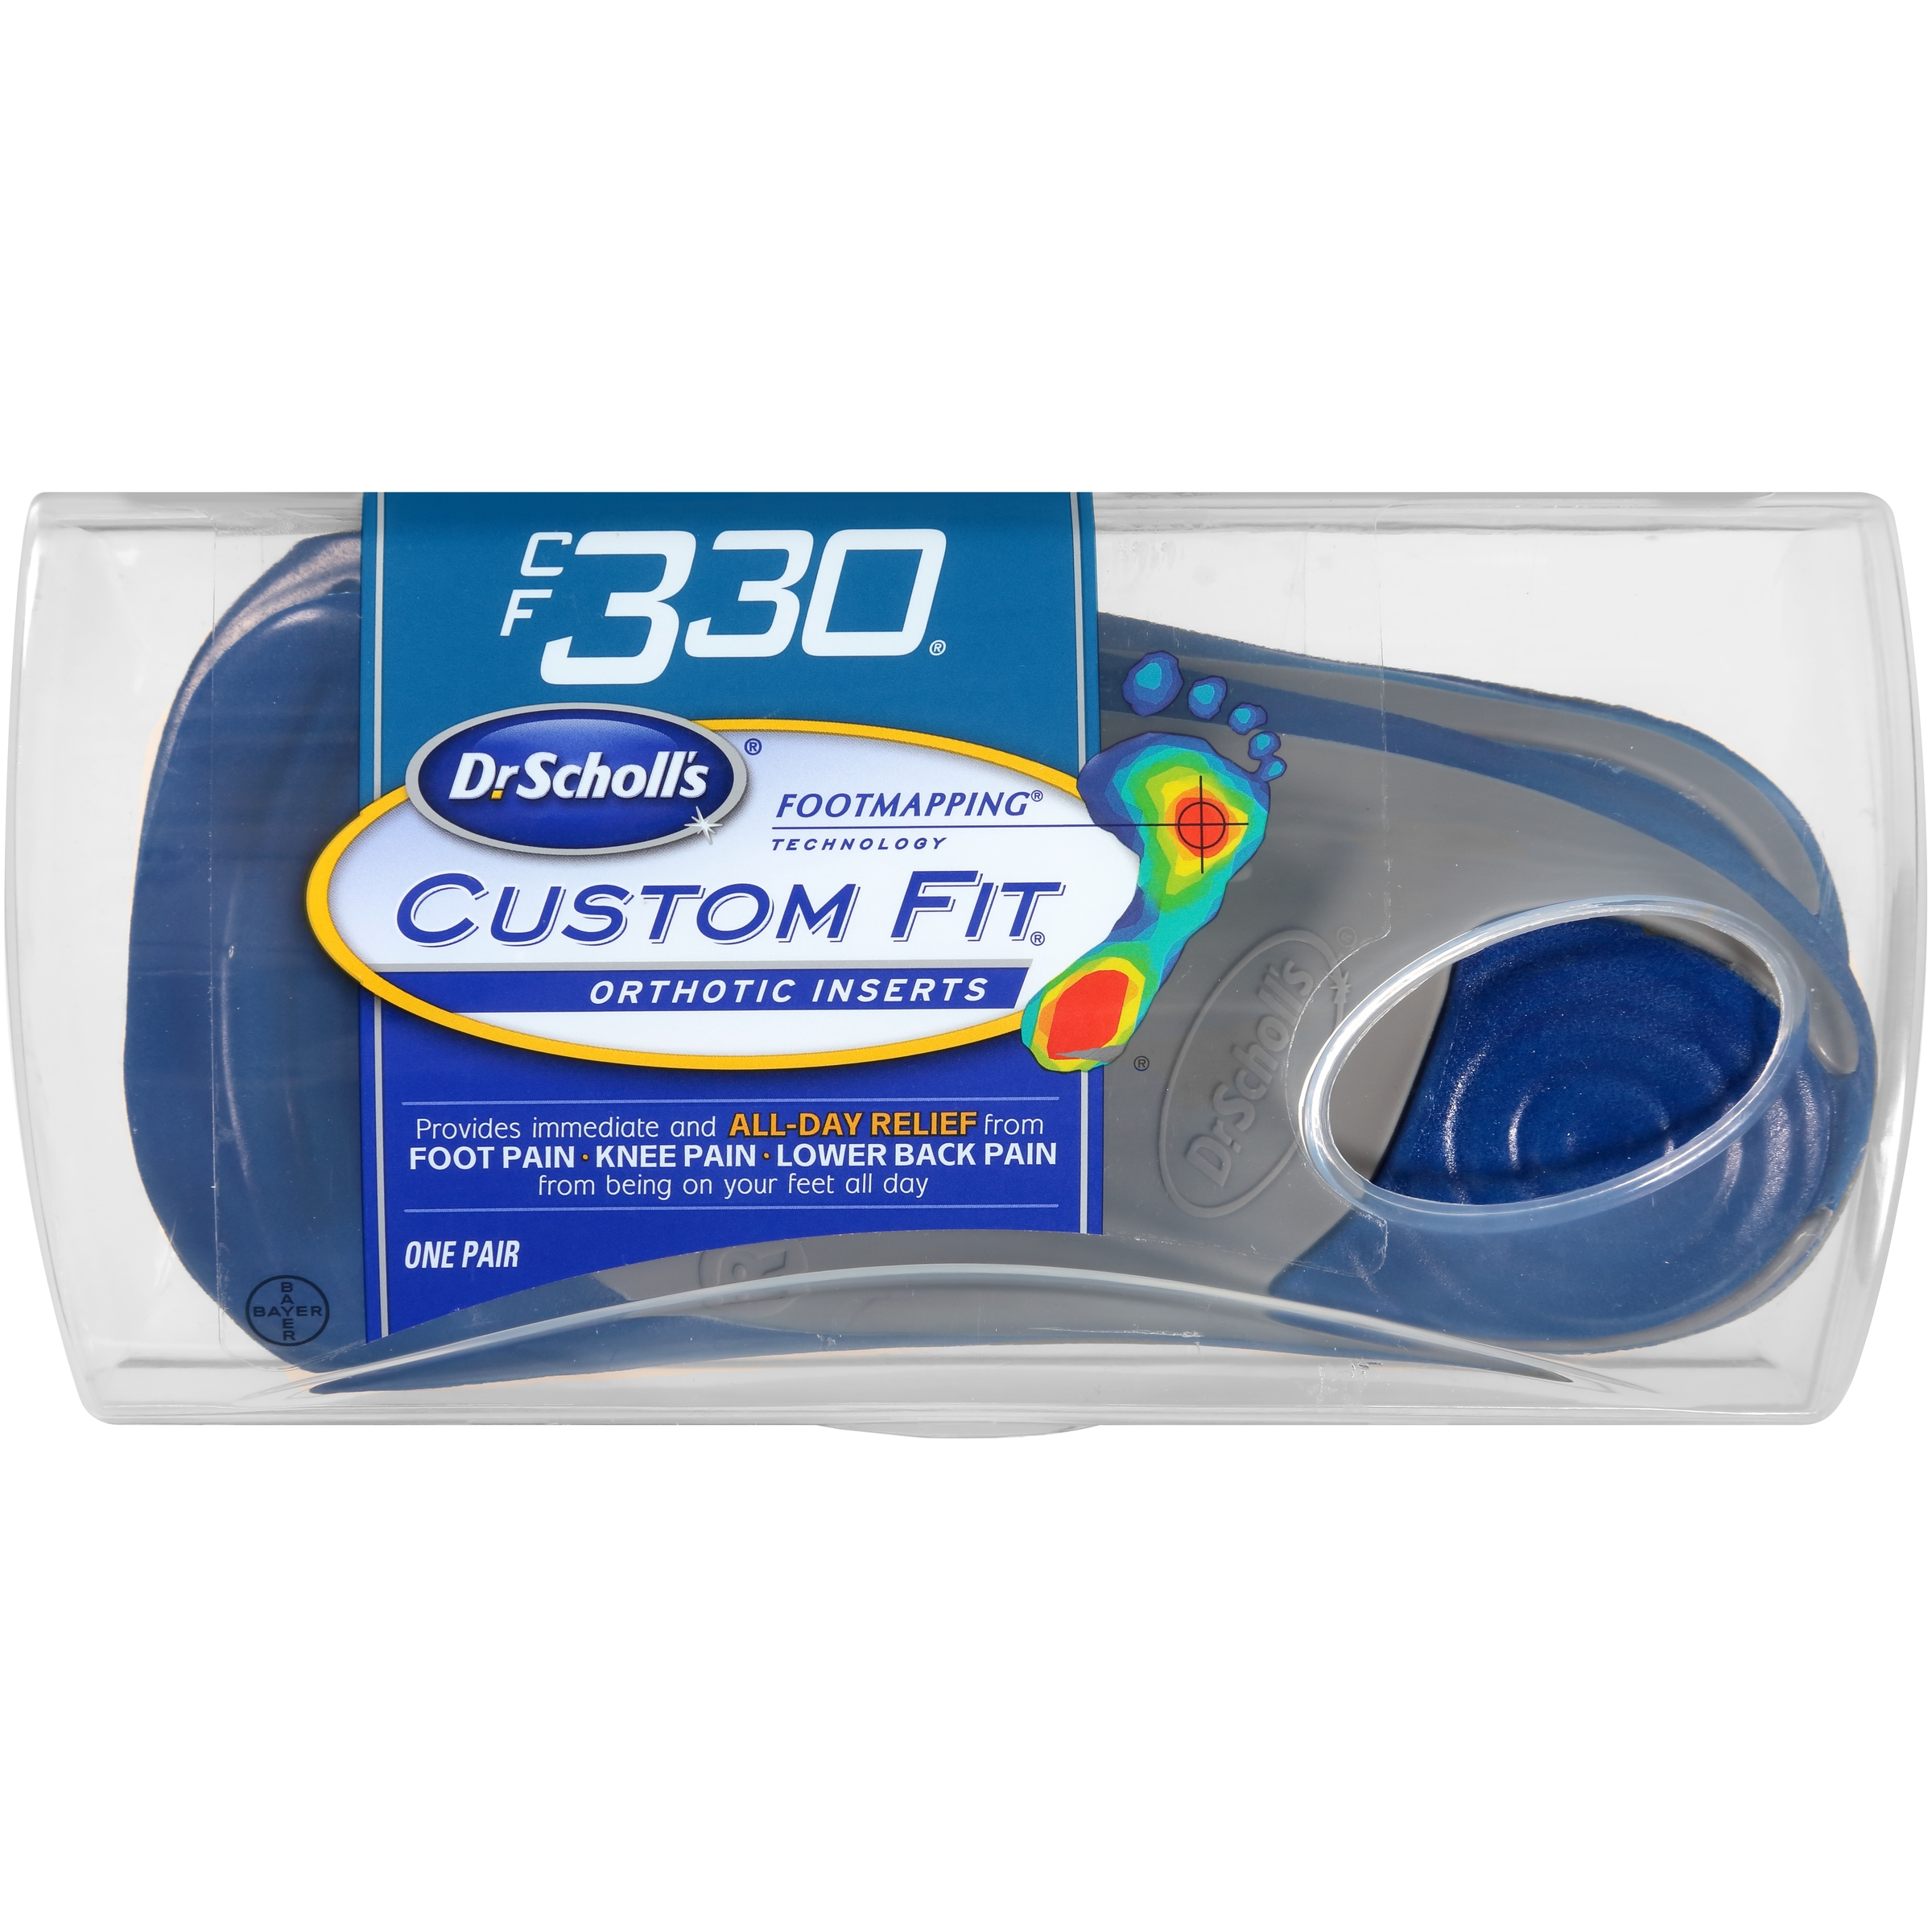 Dr. Scholl's® Custom Fit® Orthotic Inserts CF330, 1 Pair